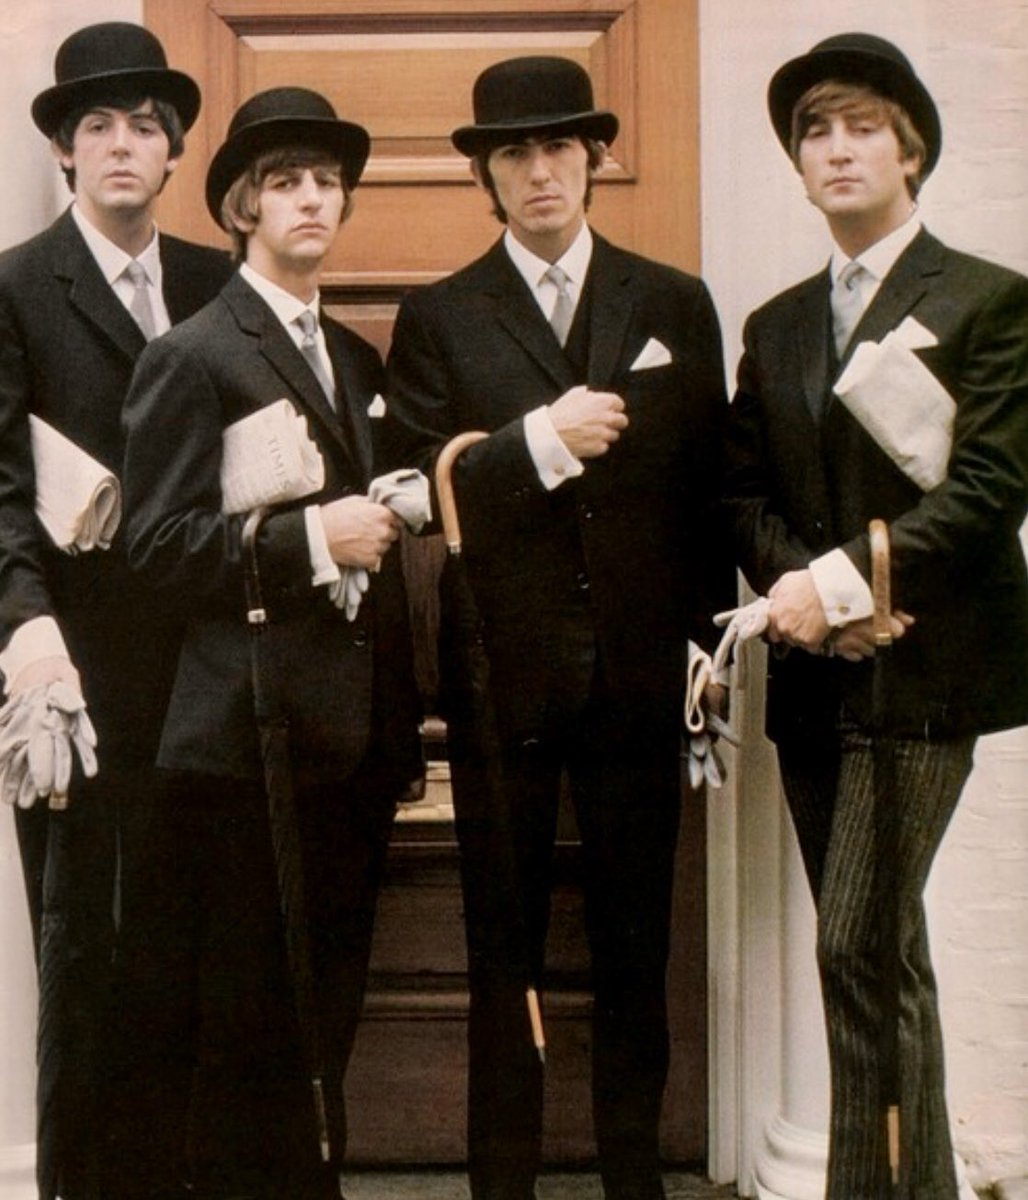 I say old chap, what a lovely, lovely picture! Photoshoot, London 1964 #TheBeatles #sixties #1960s #sixtiesstyle #sixtiesmusic #sixtieslondon #citygent #bowlerhat